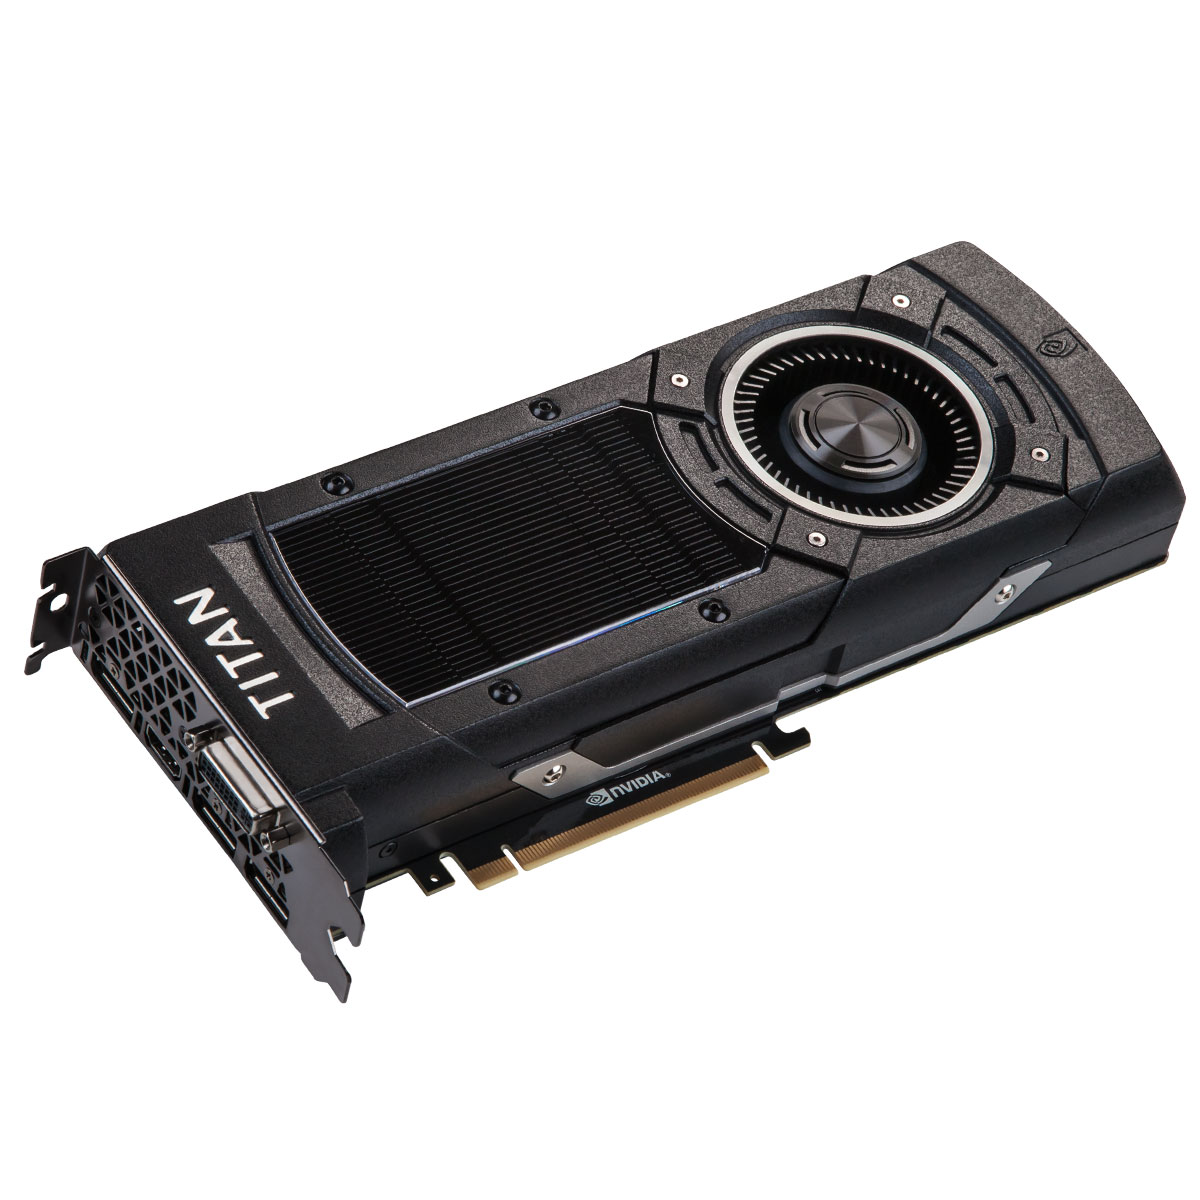 EVGA 12G P4 2990 KR GeForce GTX TITAN X 12GB 384-Bit GDDR5 PCI Express 3.0 HDCP Ready SLI Support Video Card